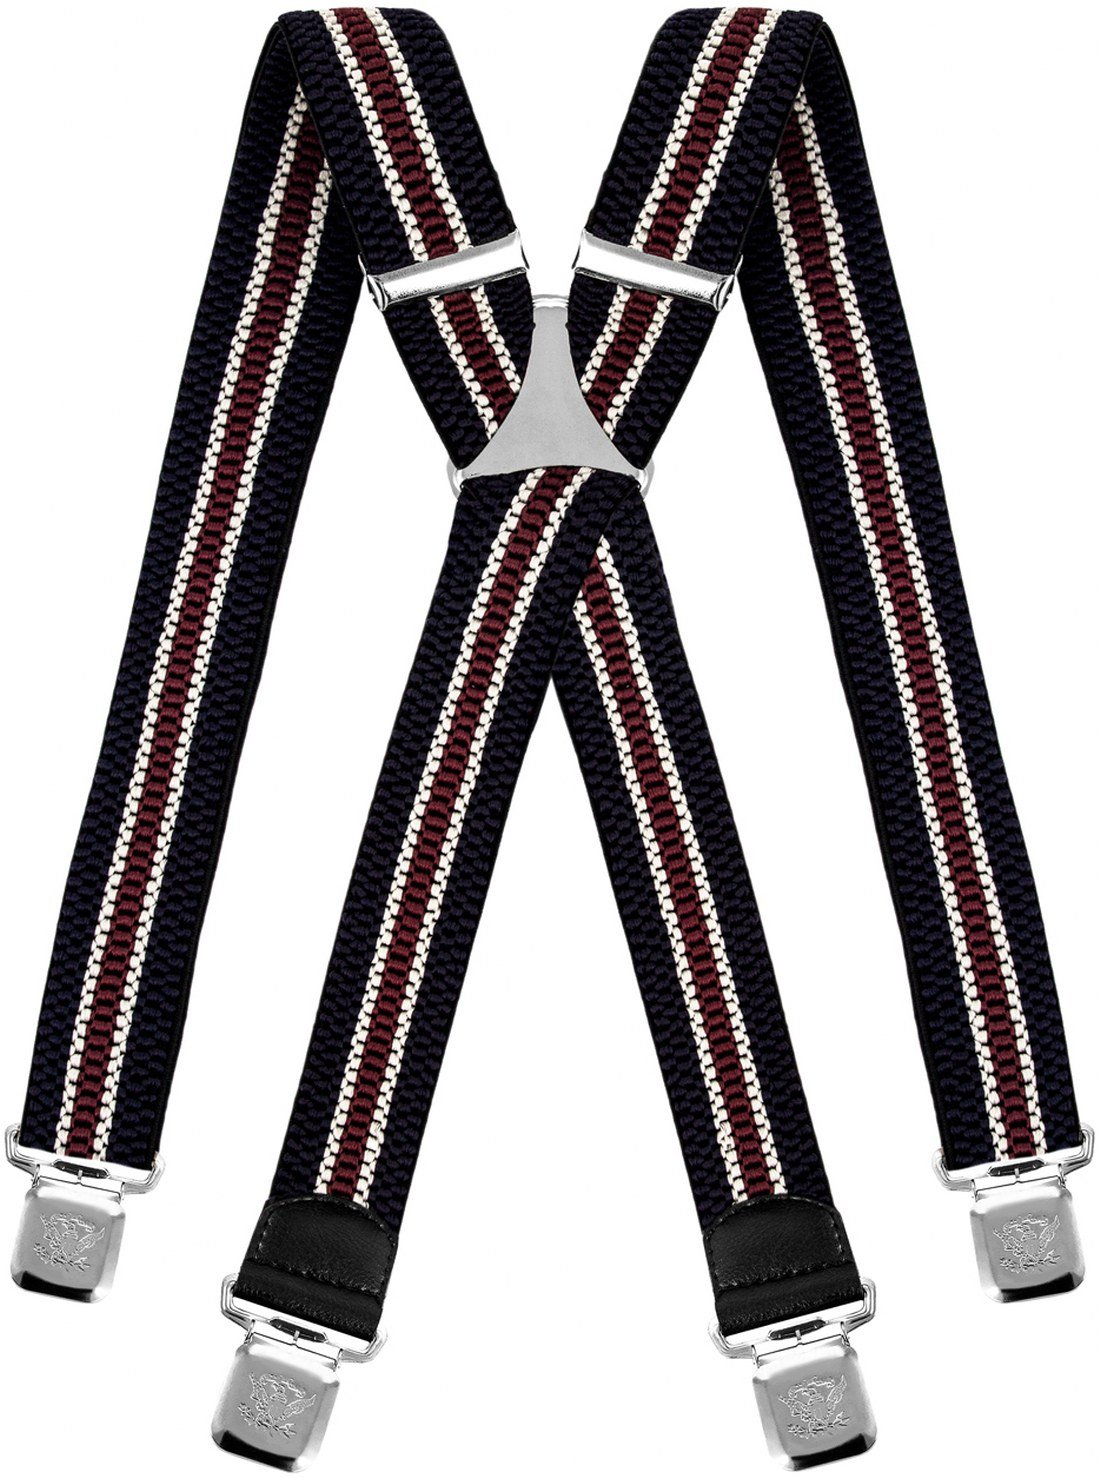 Decalen Mens Suspenders wide Adjustable and Elastic Braces X Shape with a Very Strong Clips Heavy Duty (Navy Blue Beige Maroon)